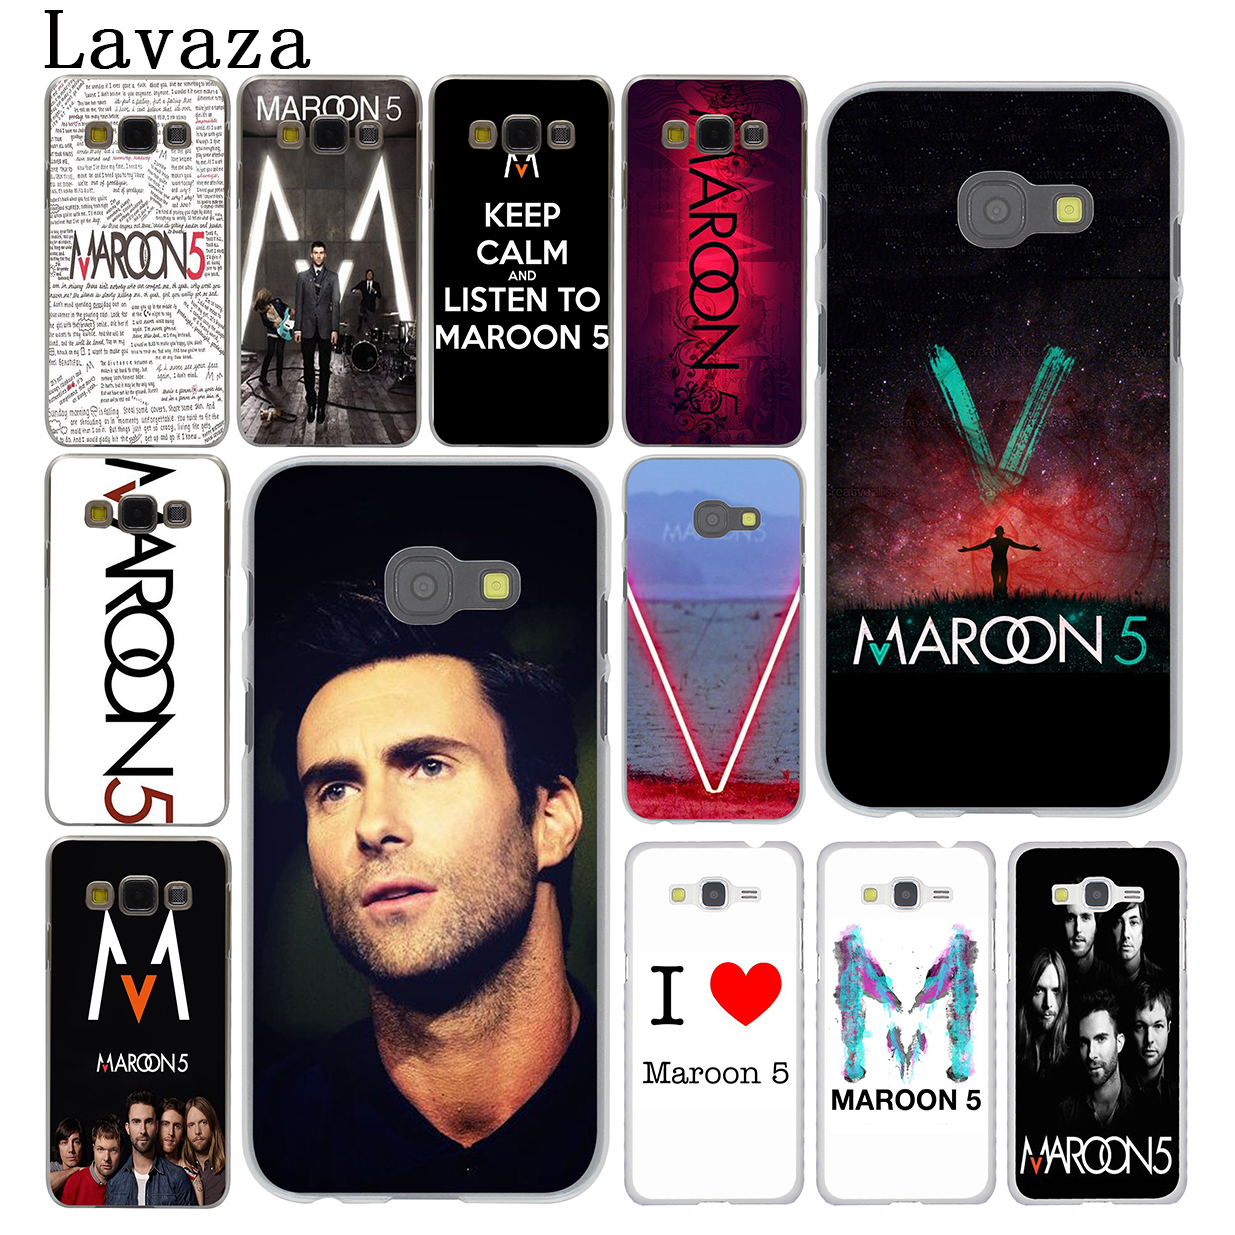 Lavaza maroon 5 Hard Phone Case for Samsung Galaxy A8 A7 A3 A5 2015 2016 2017 2018 Note 8 5 4 3 Grand Prime 2